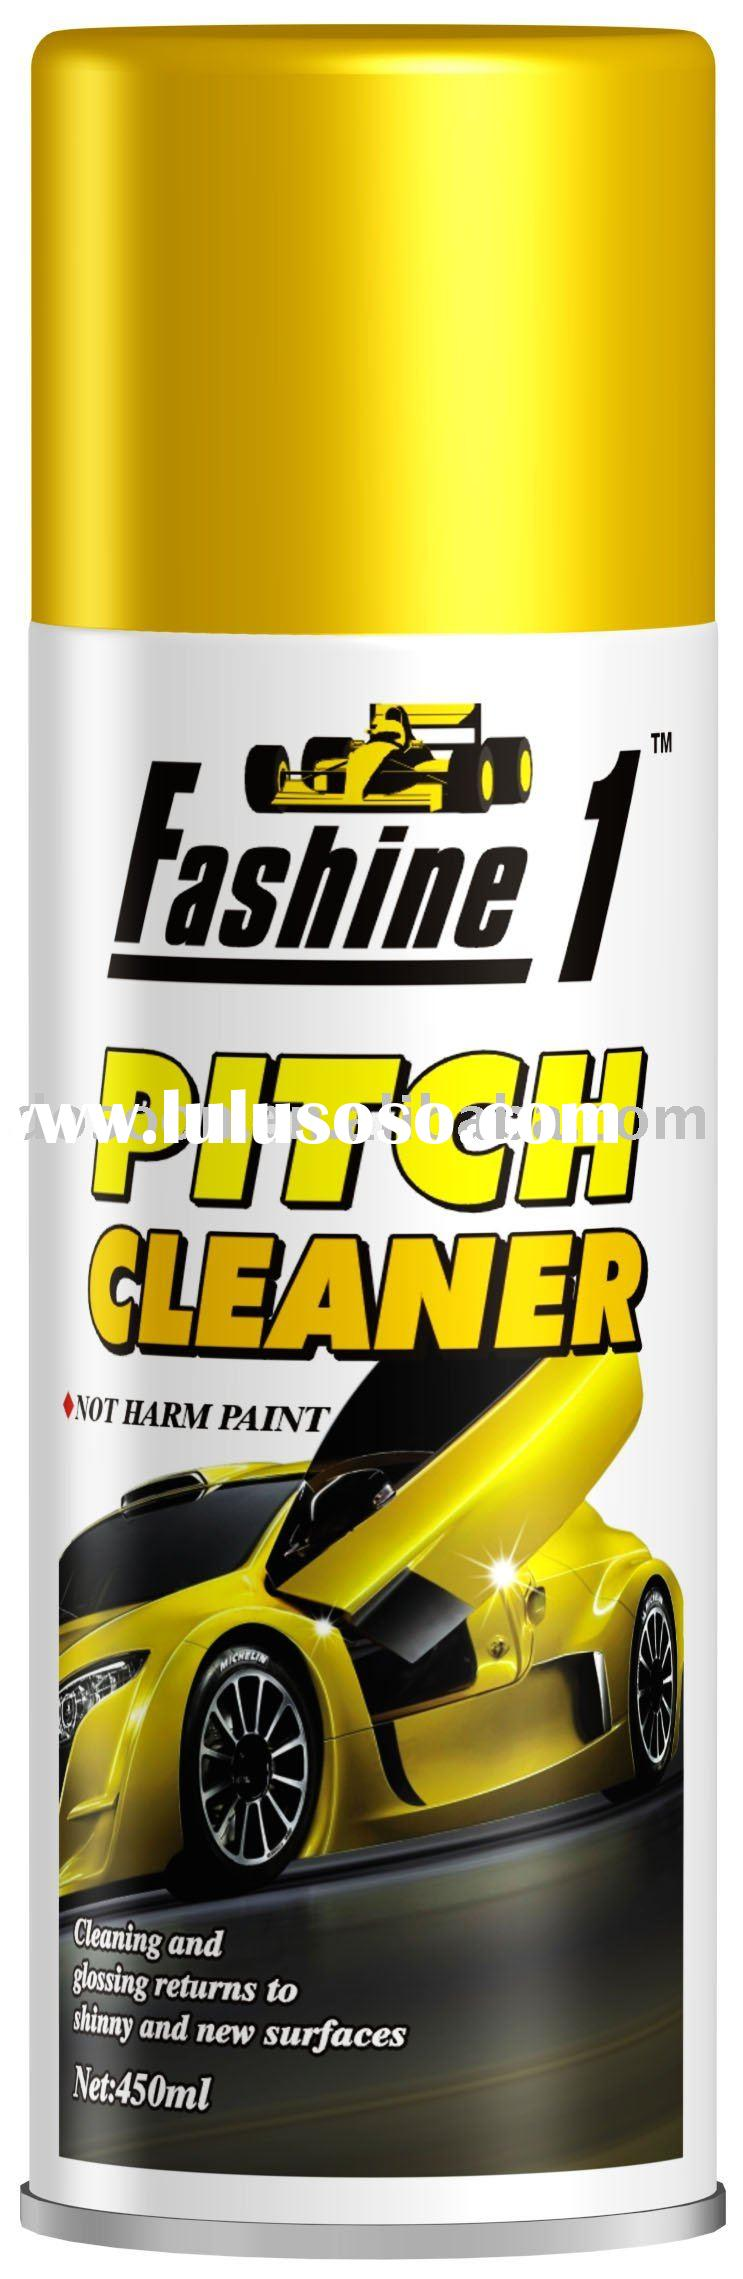 3N pitch cleaner,car cleaner,car care products